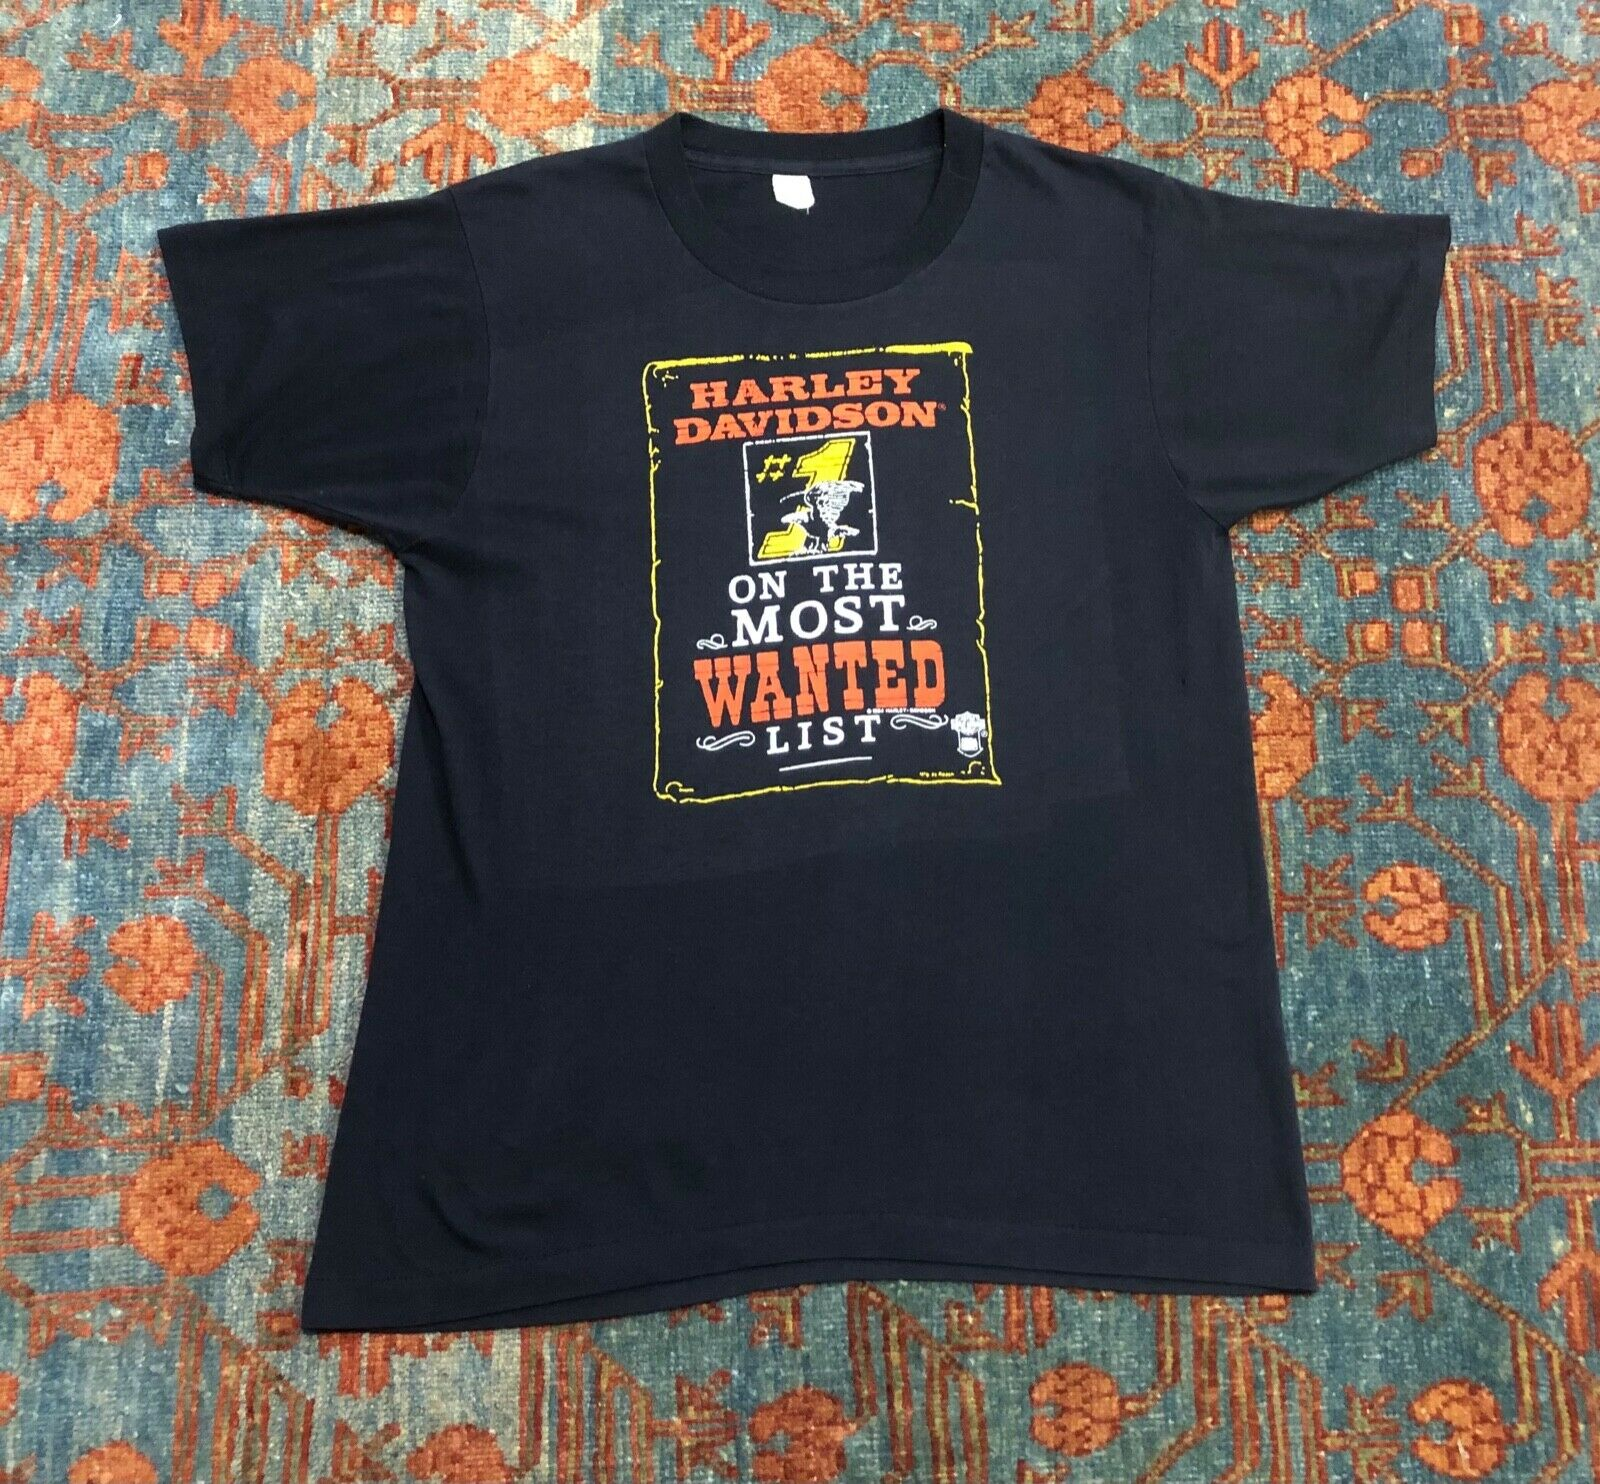 Vintage 1984 Harley Davidson ON THE MOST WANTED LIST T shirt size Large